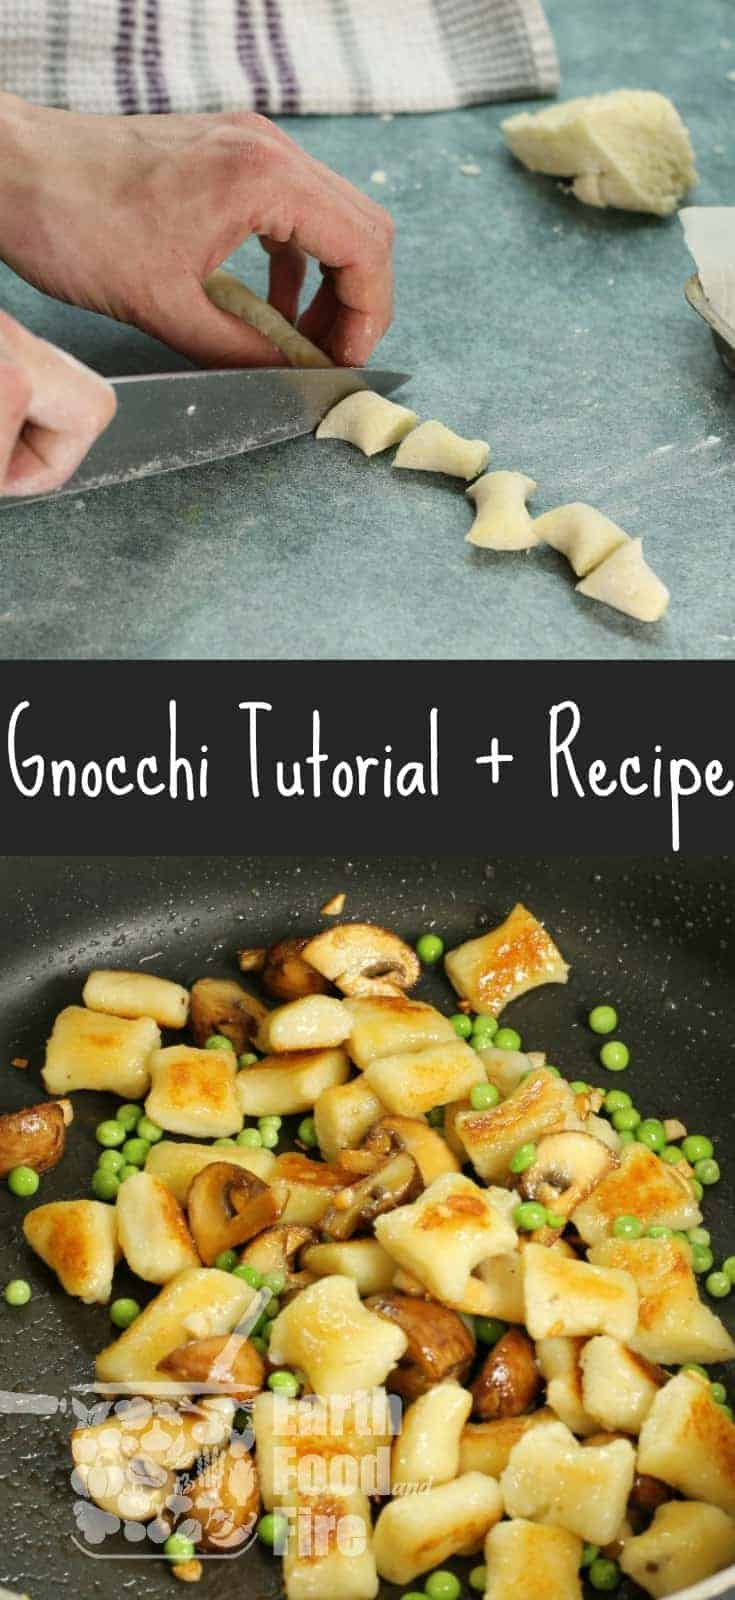 Making gnocchi is not as hard as it may appear. Learn how to make potato gnocchi at home, just like the pros and create a tasty dish with mushrooms and peas.